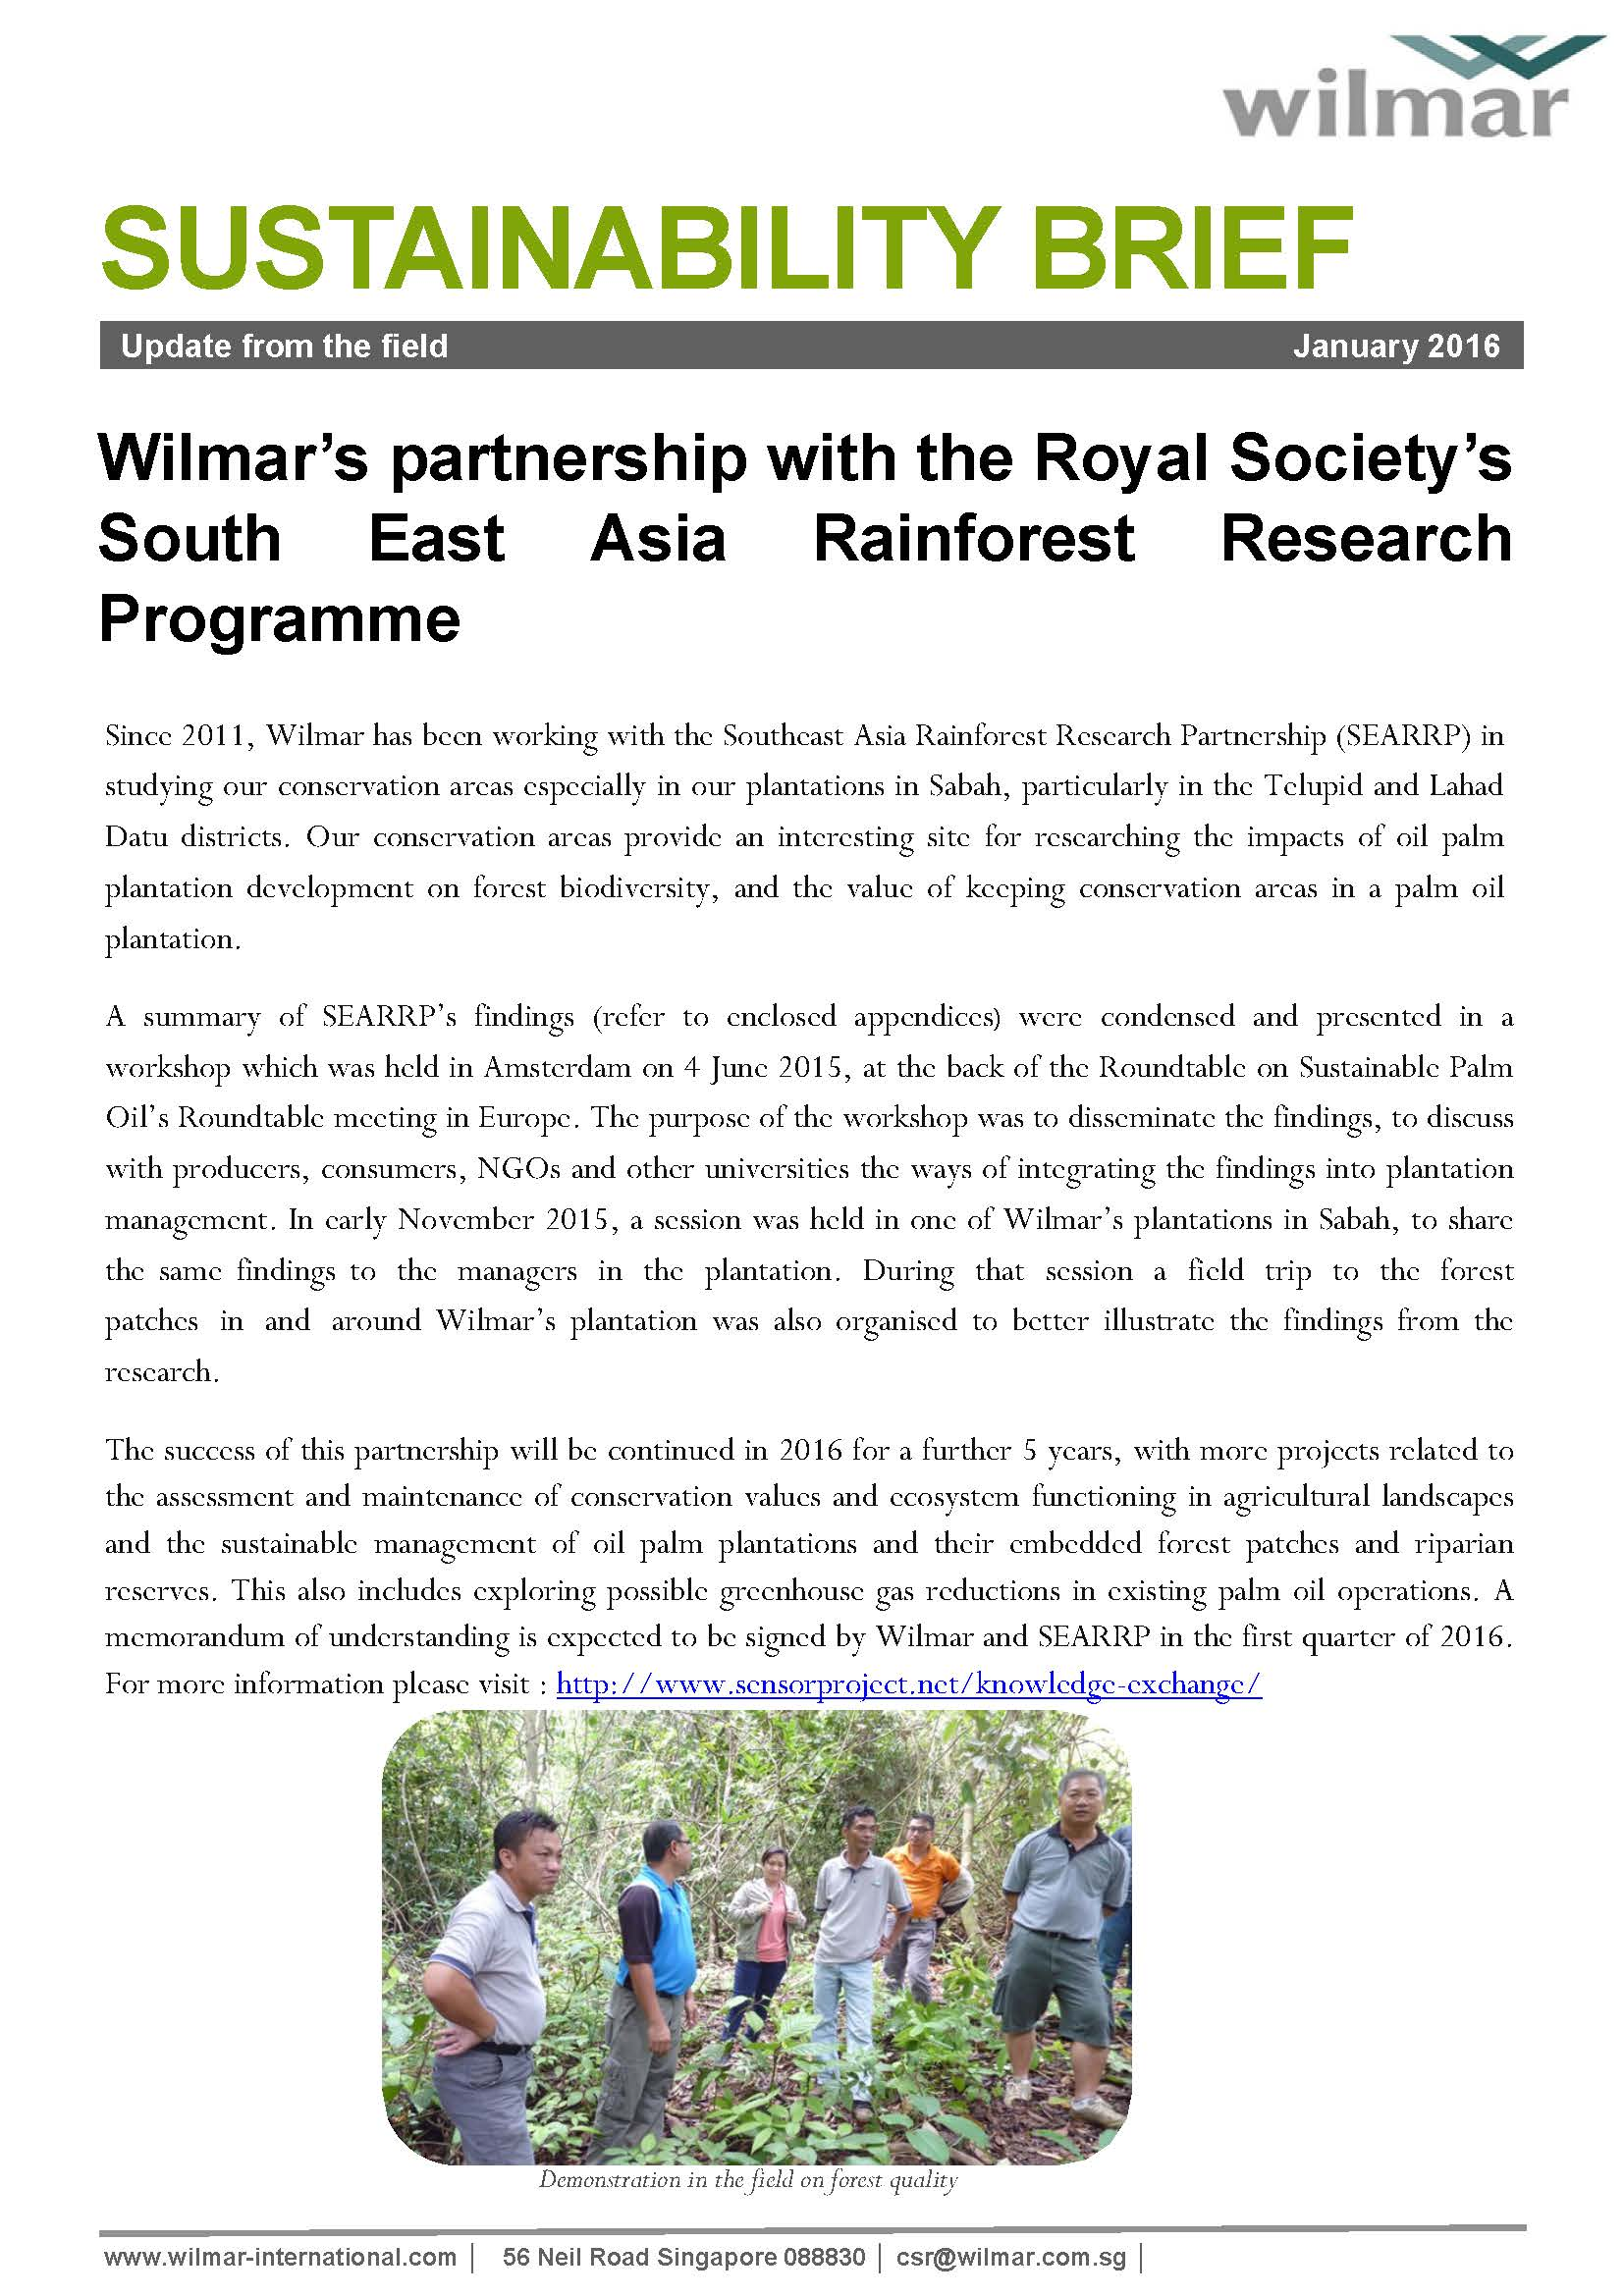 Wilmar's-partnership-with-the-Royal-Society's-South-East-Asia-Rainforest_Final